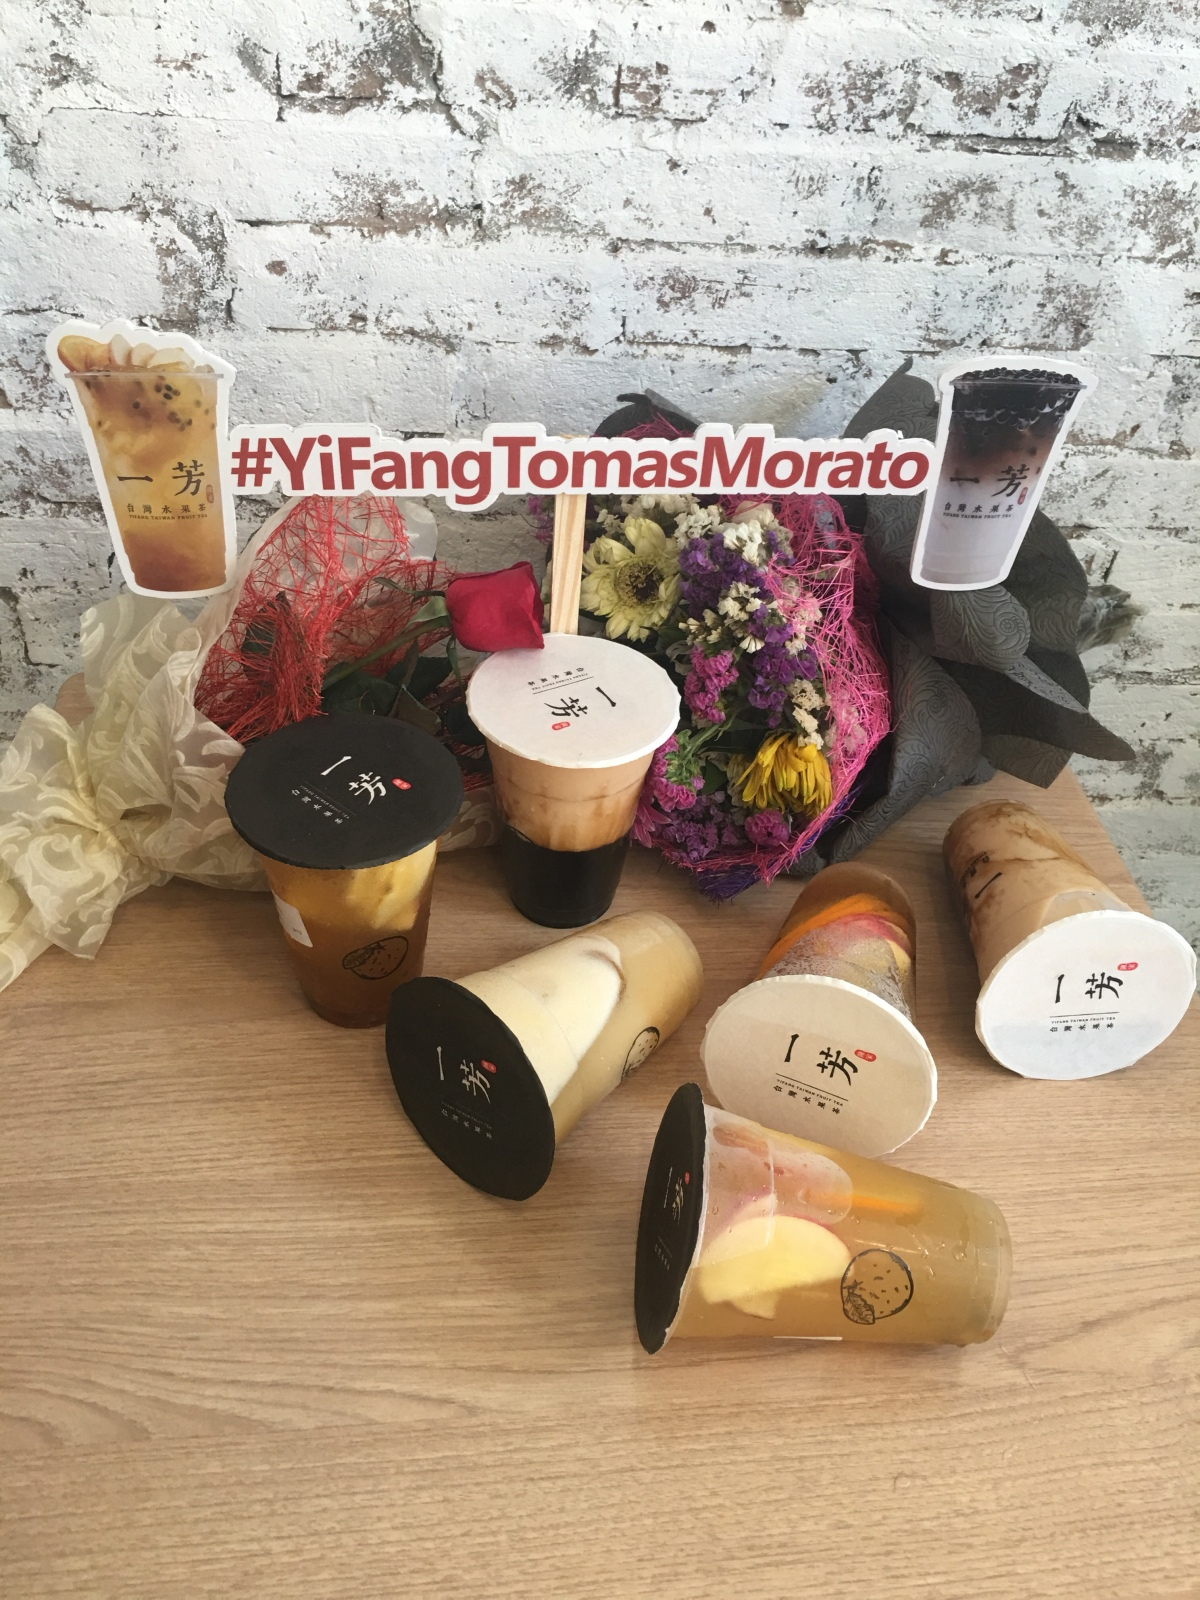 Fun and fresh flavors at the newly opened Yi Fang, Tomas Morato